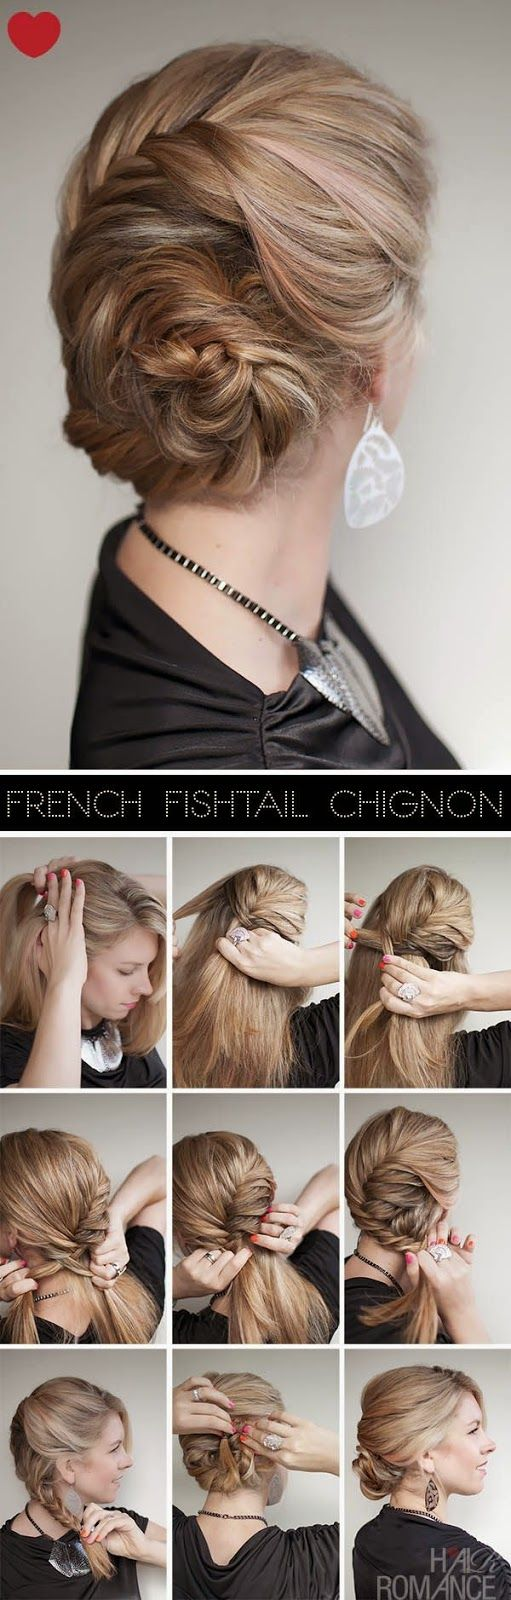 too cute.. definitely makes me wish I could do a proper fishtail braid...